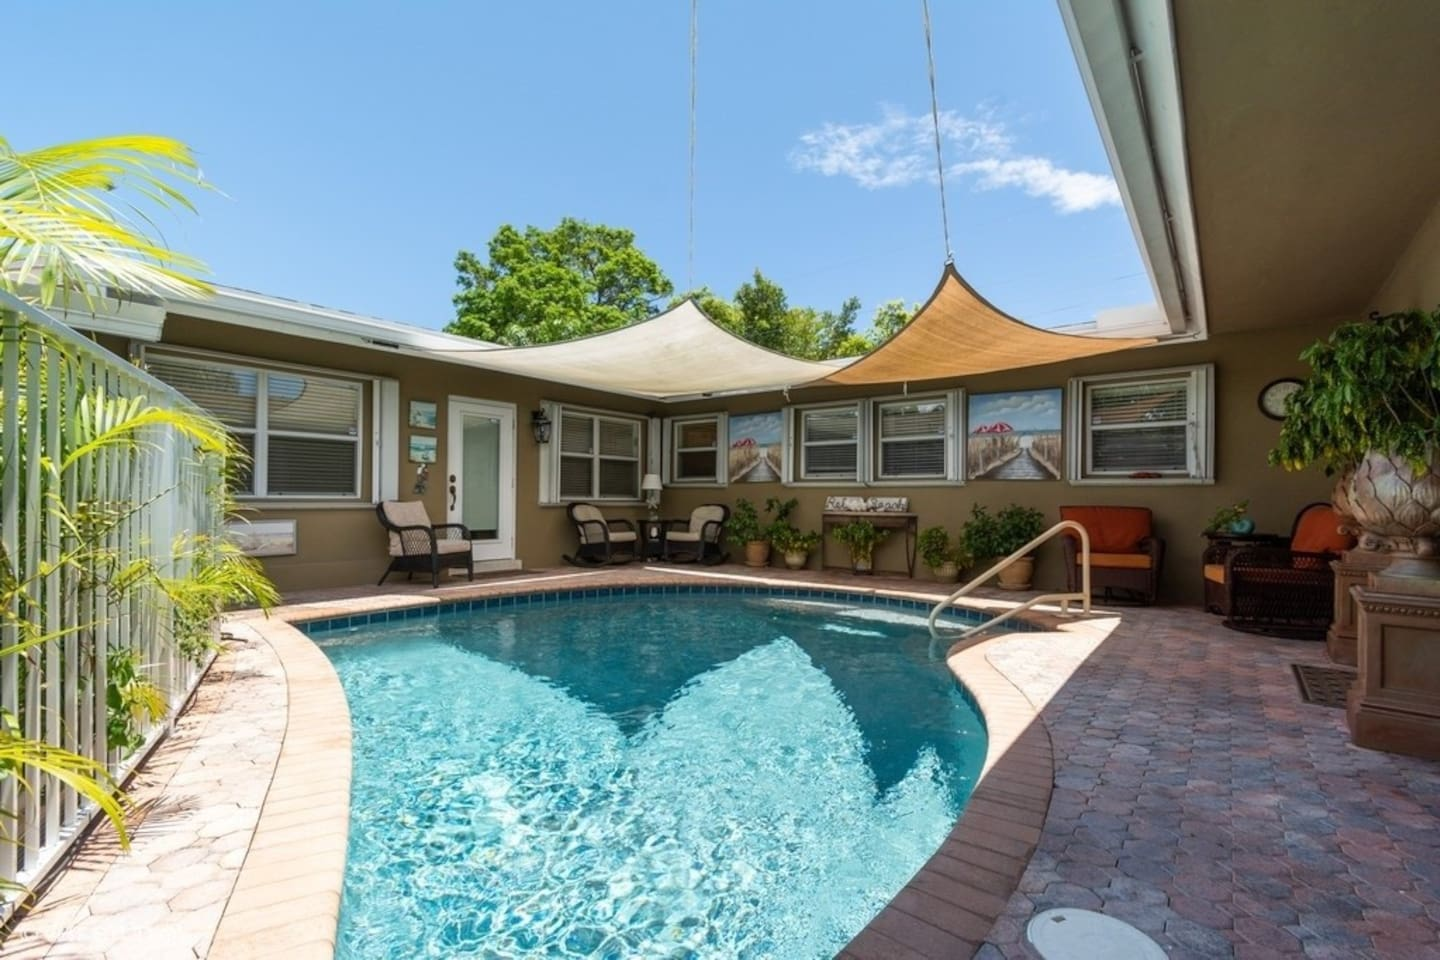 Paradise Pool with patio furniture, shaded